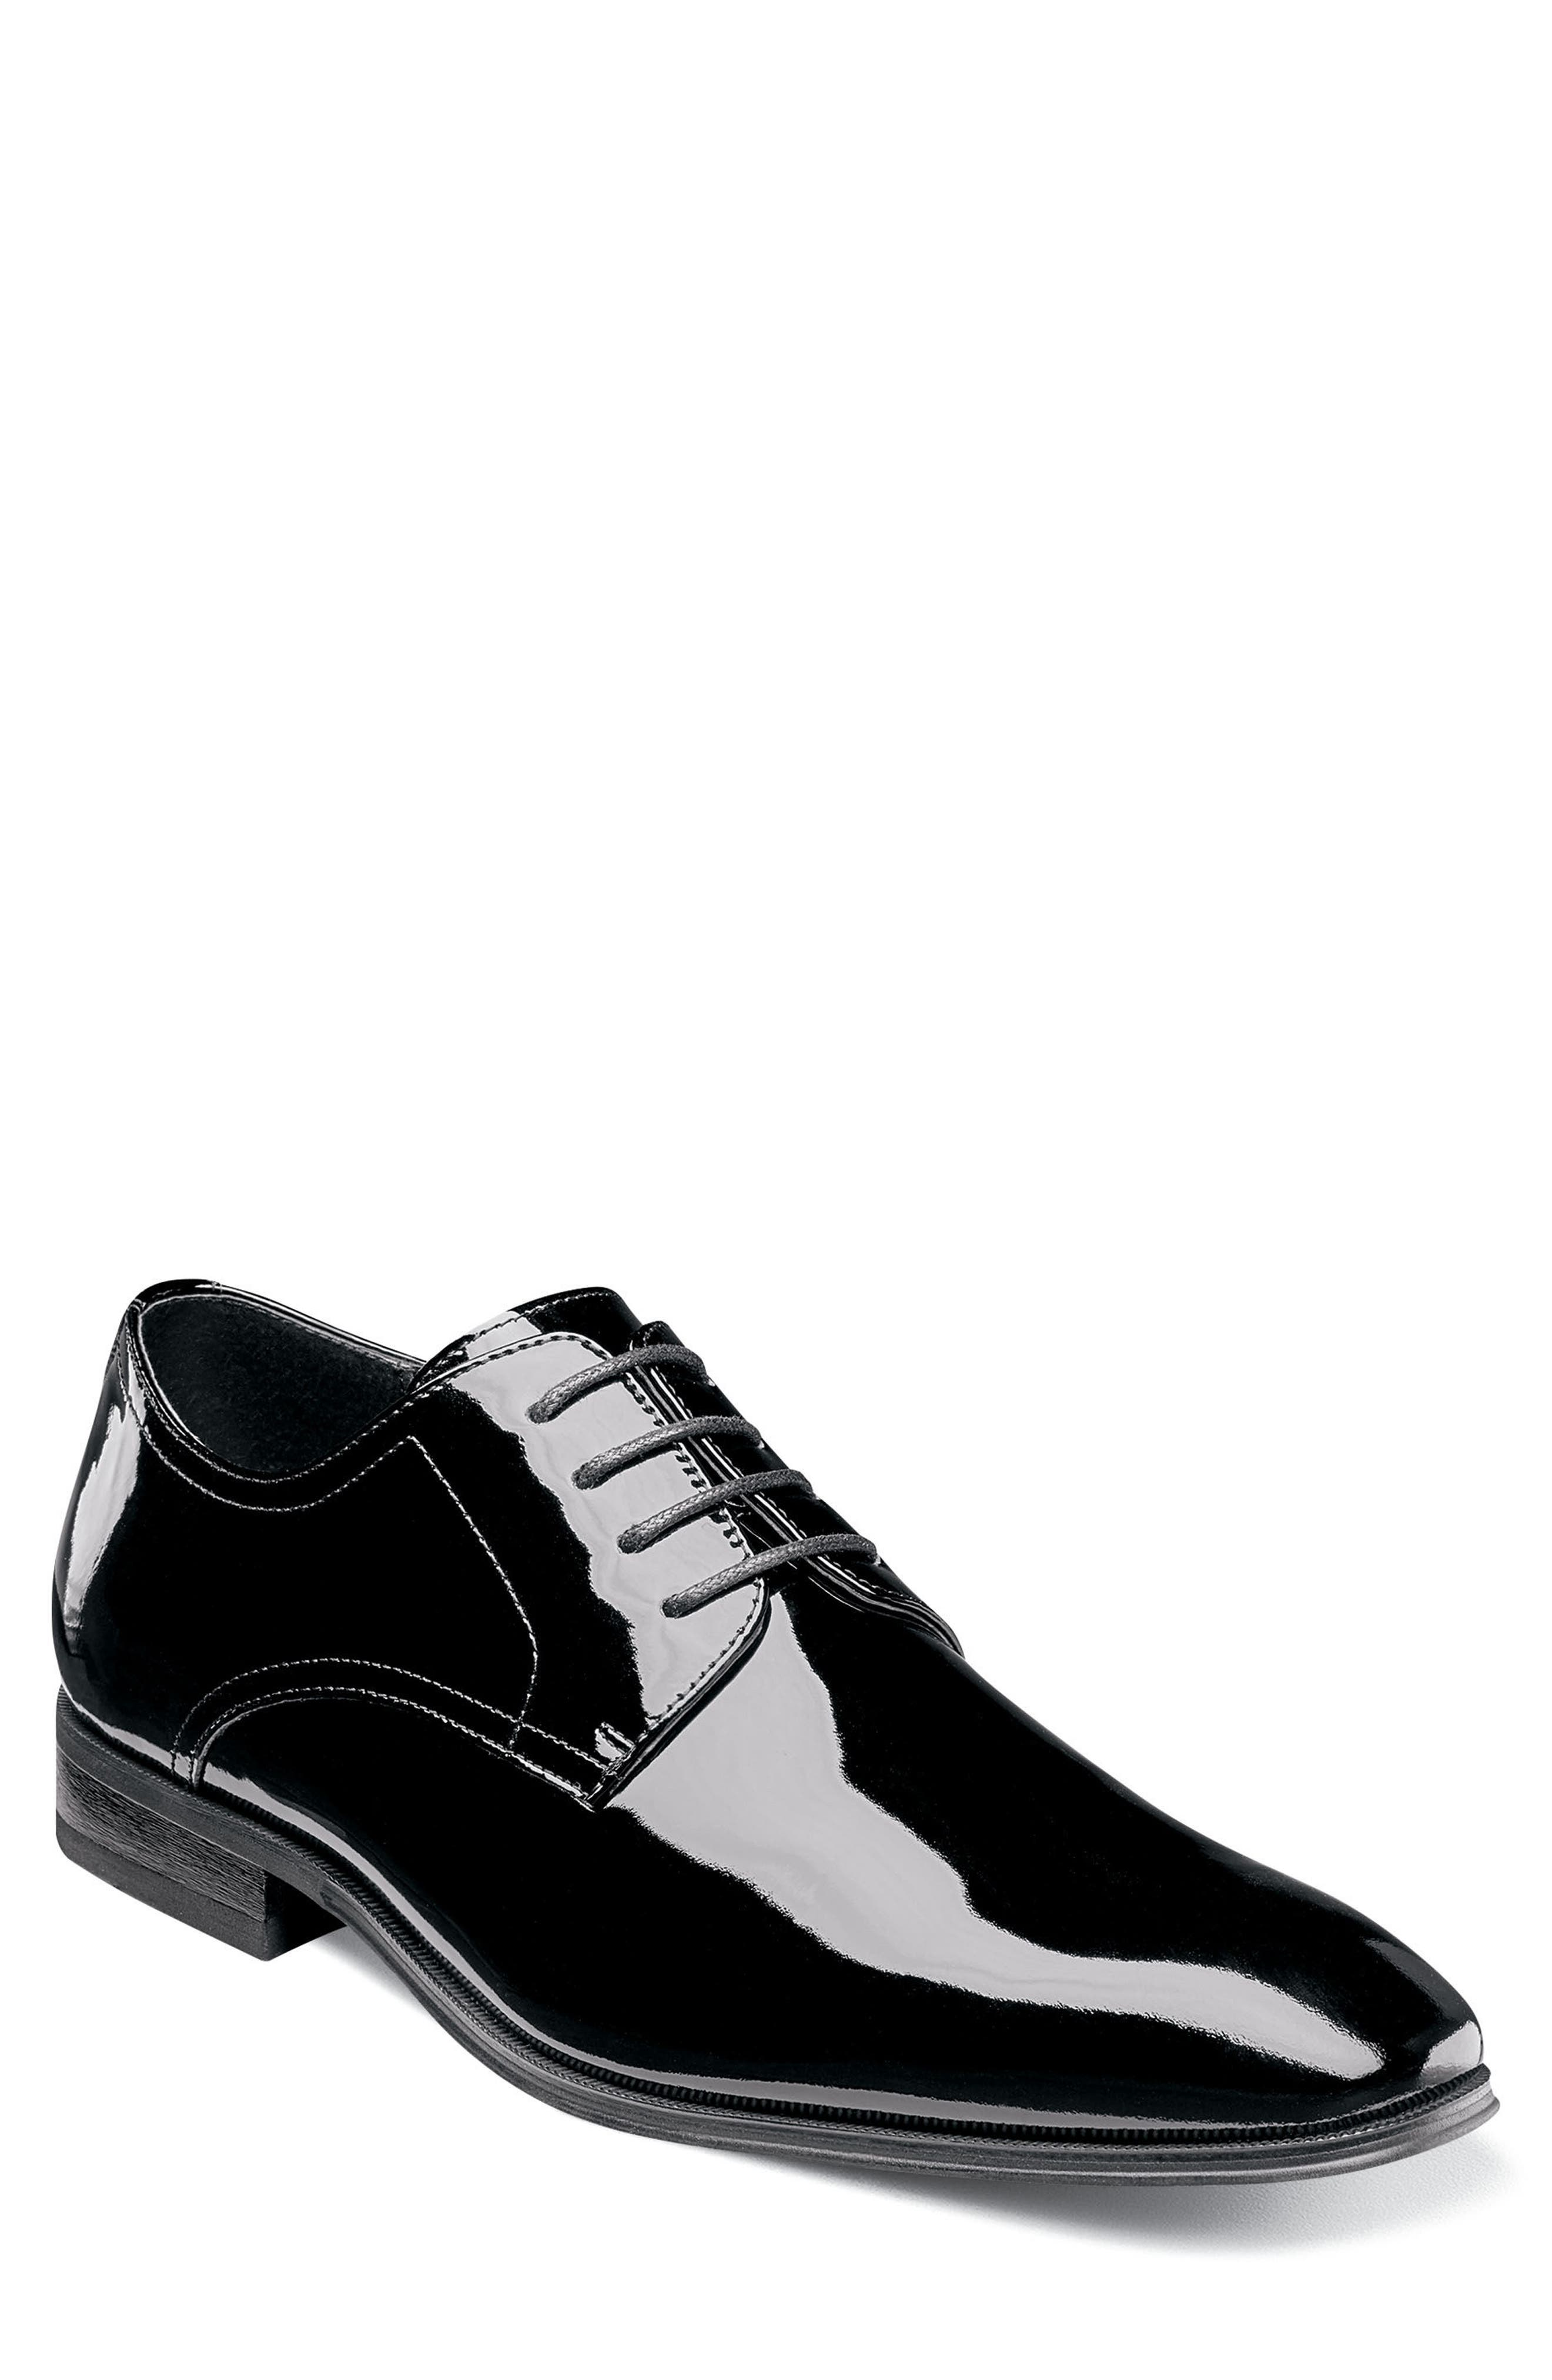 Main Image - Florsheim Tux Plain Toe Derby (Men)